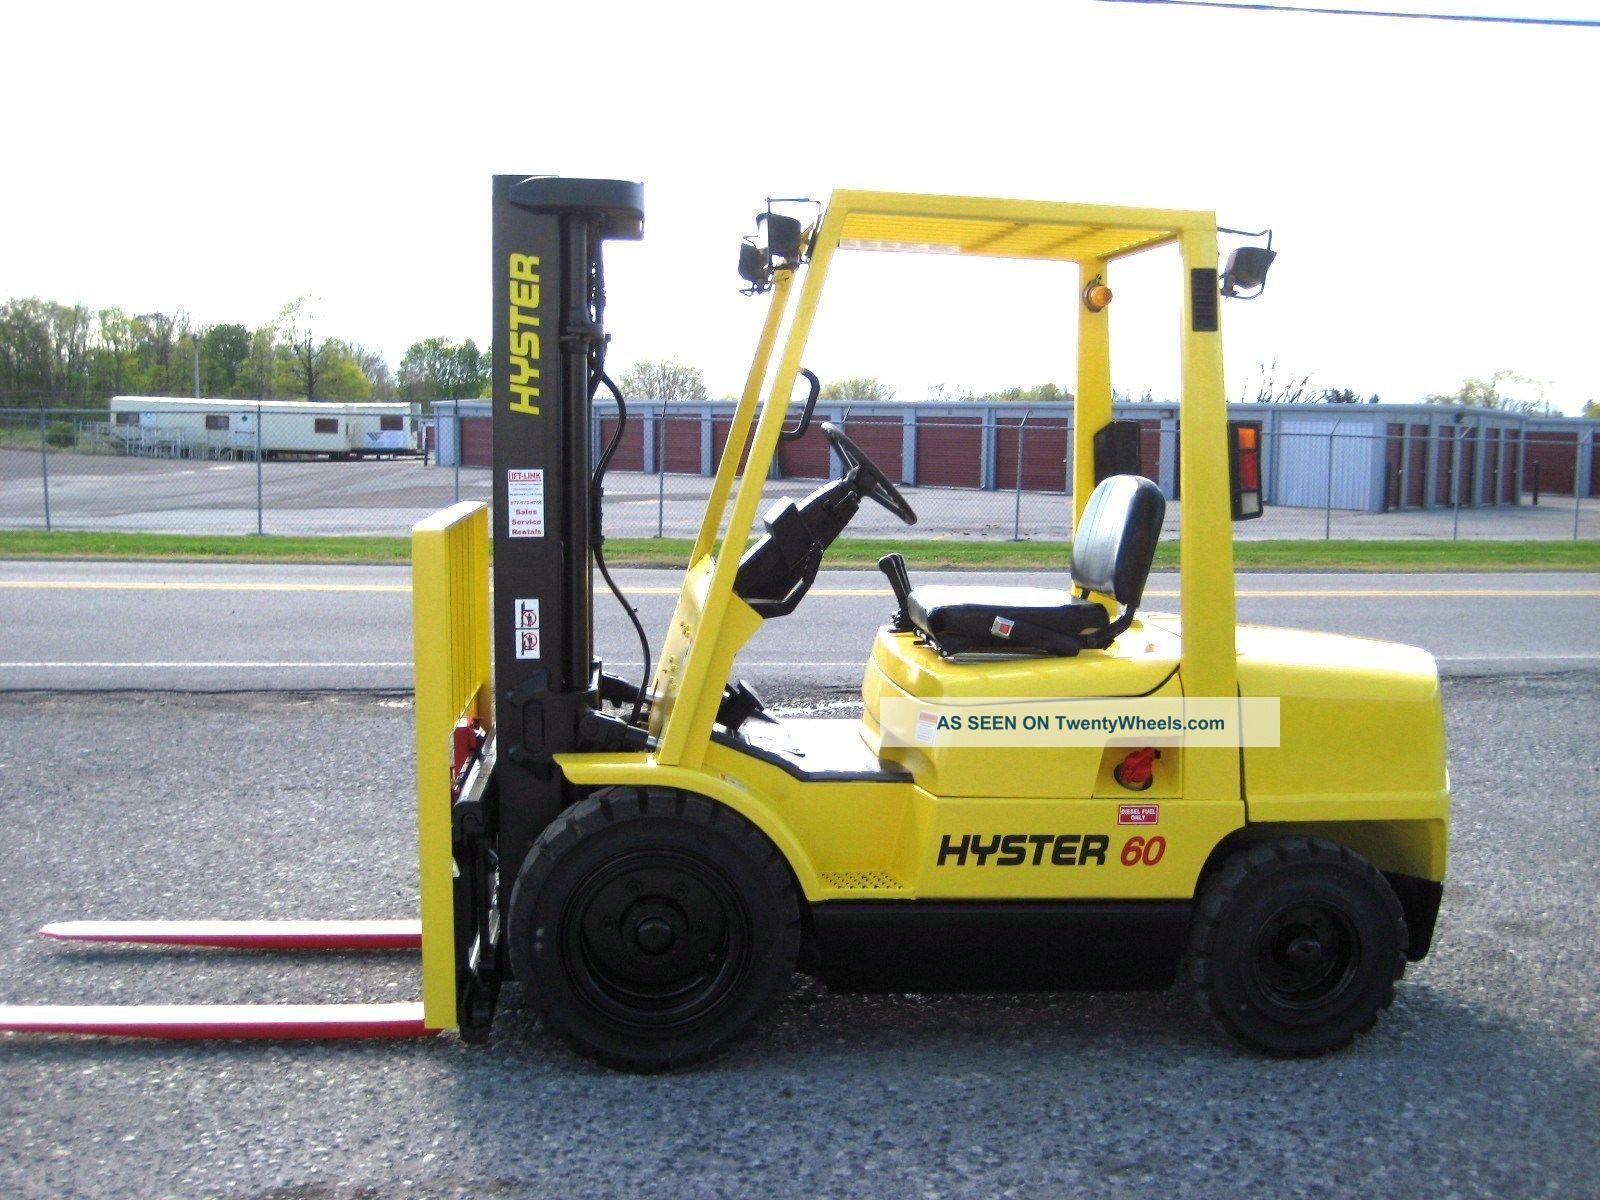 Forklift Operating amp Maintenance Manuals Hyster